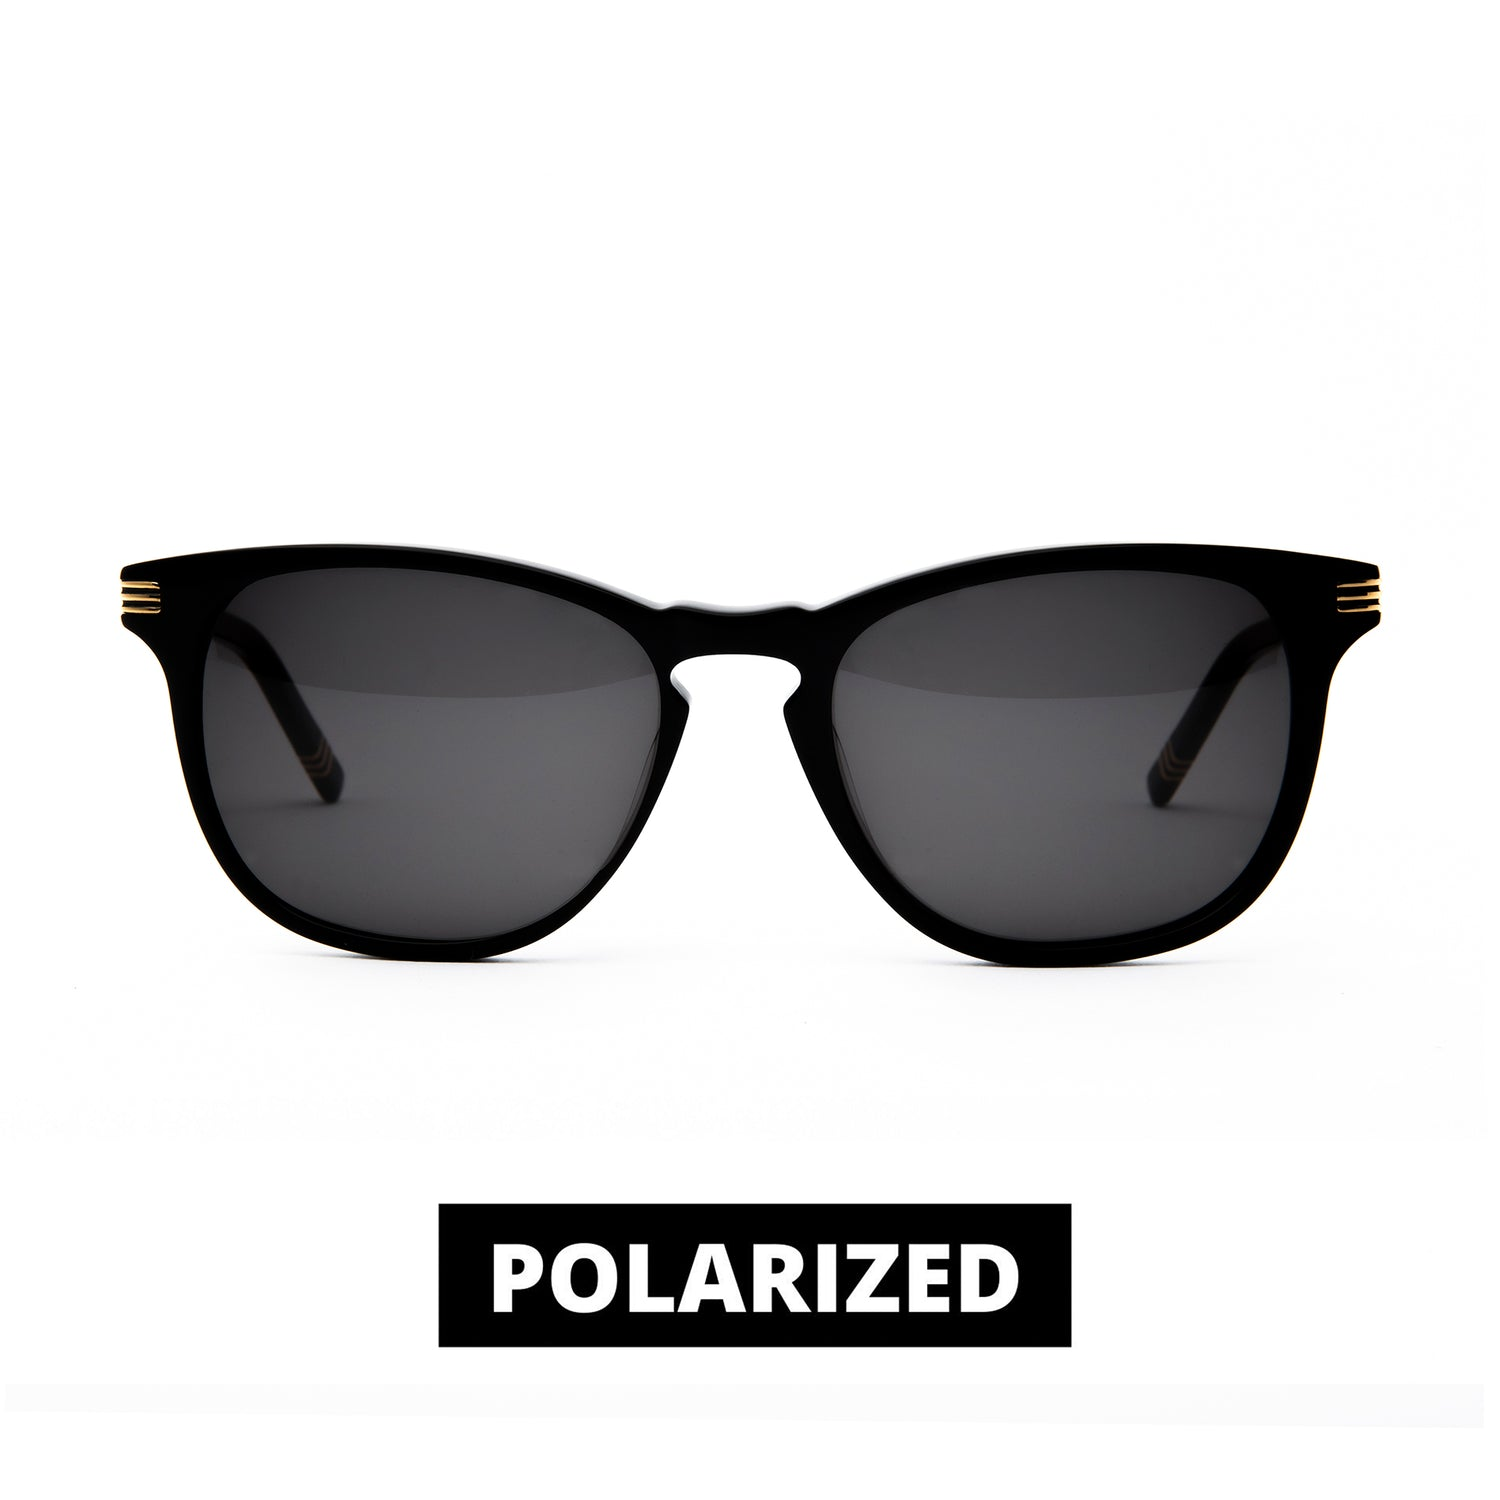 black-with-blackout-polarized-lenses